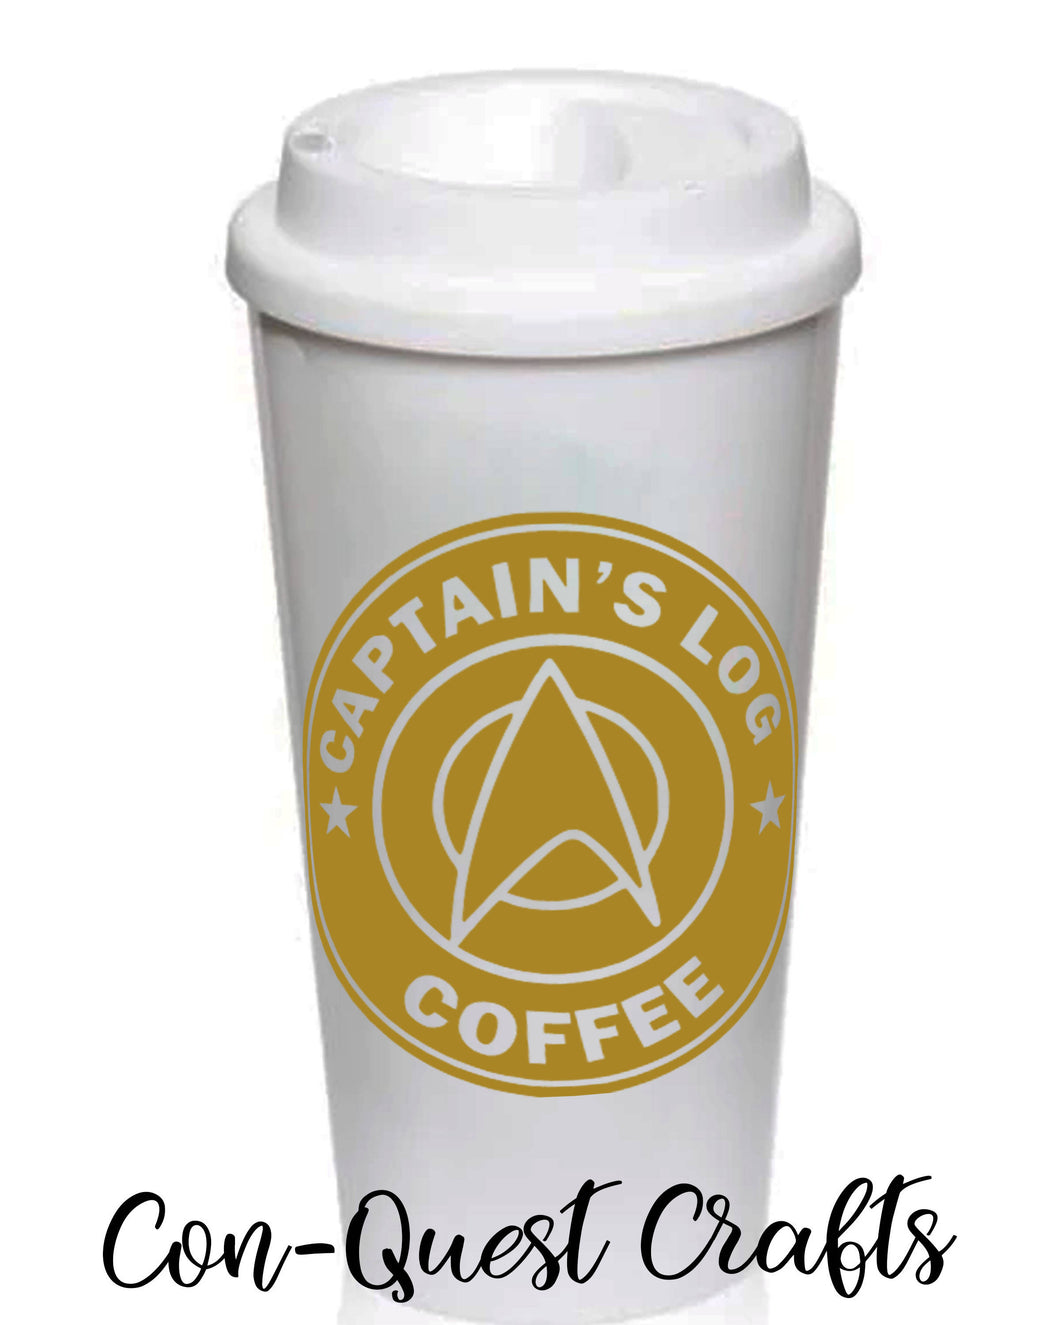 Star Trek Inspired Permanent Decals - DECAL ONLY